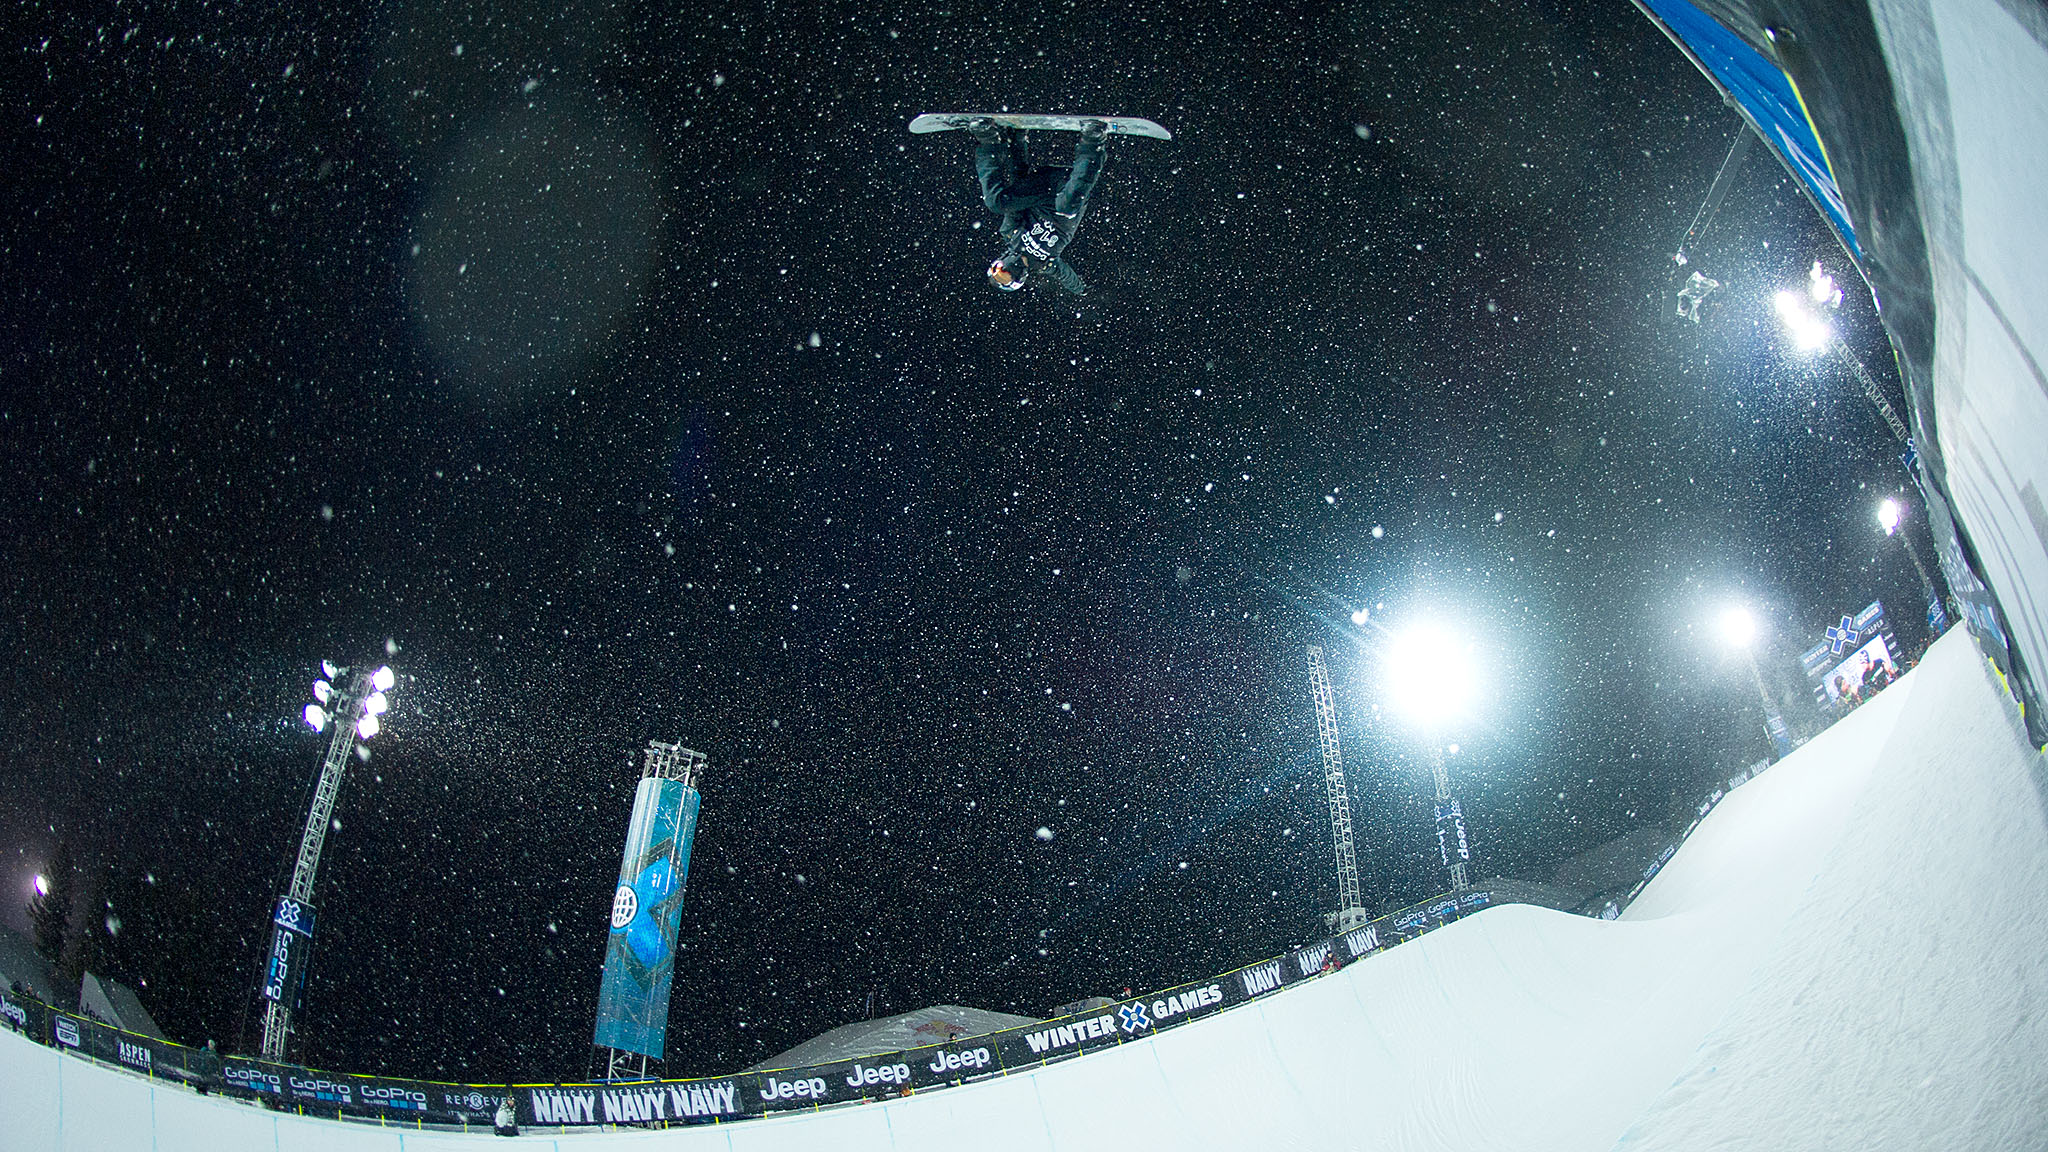 Shaun White's first run proved enough to get him into the SuperPipe final, where he will try to defend his title.